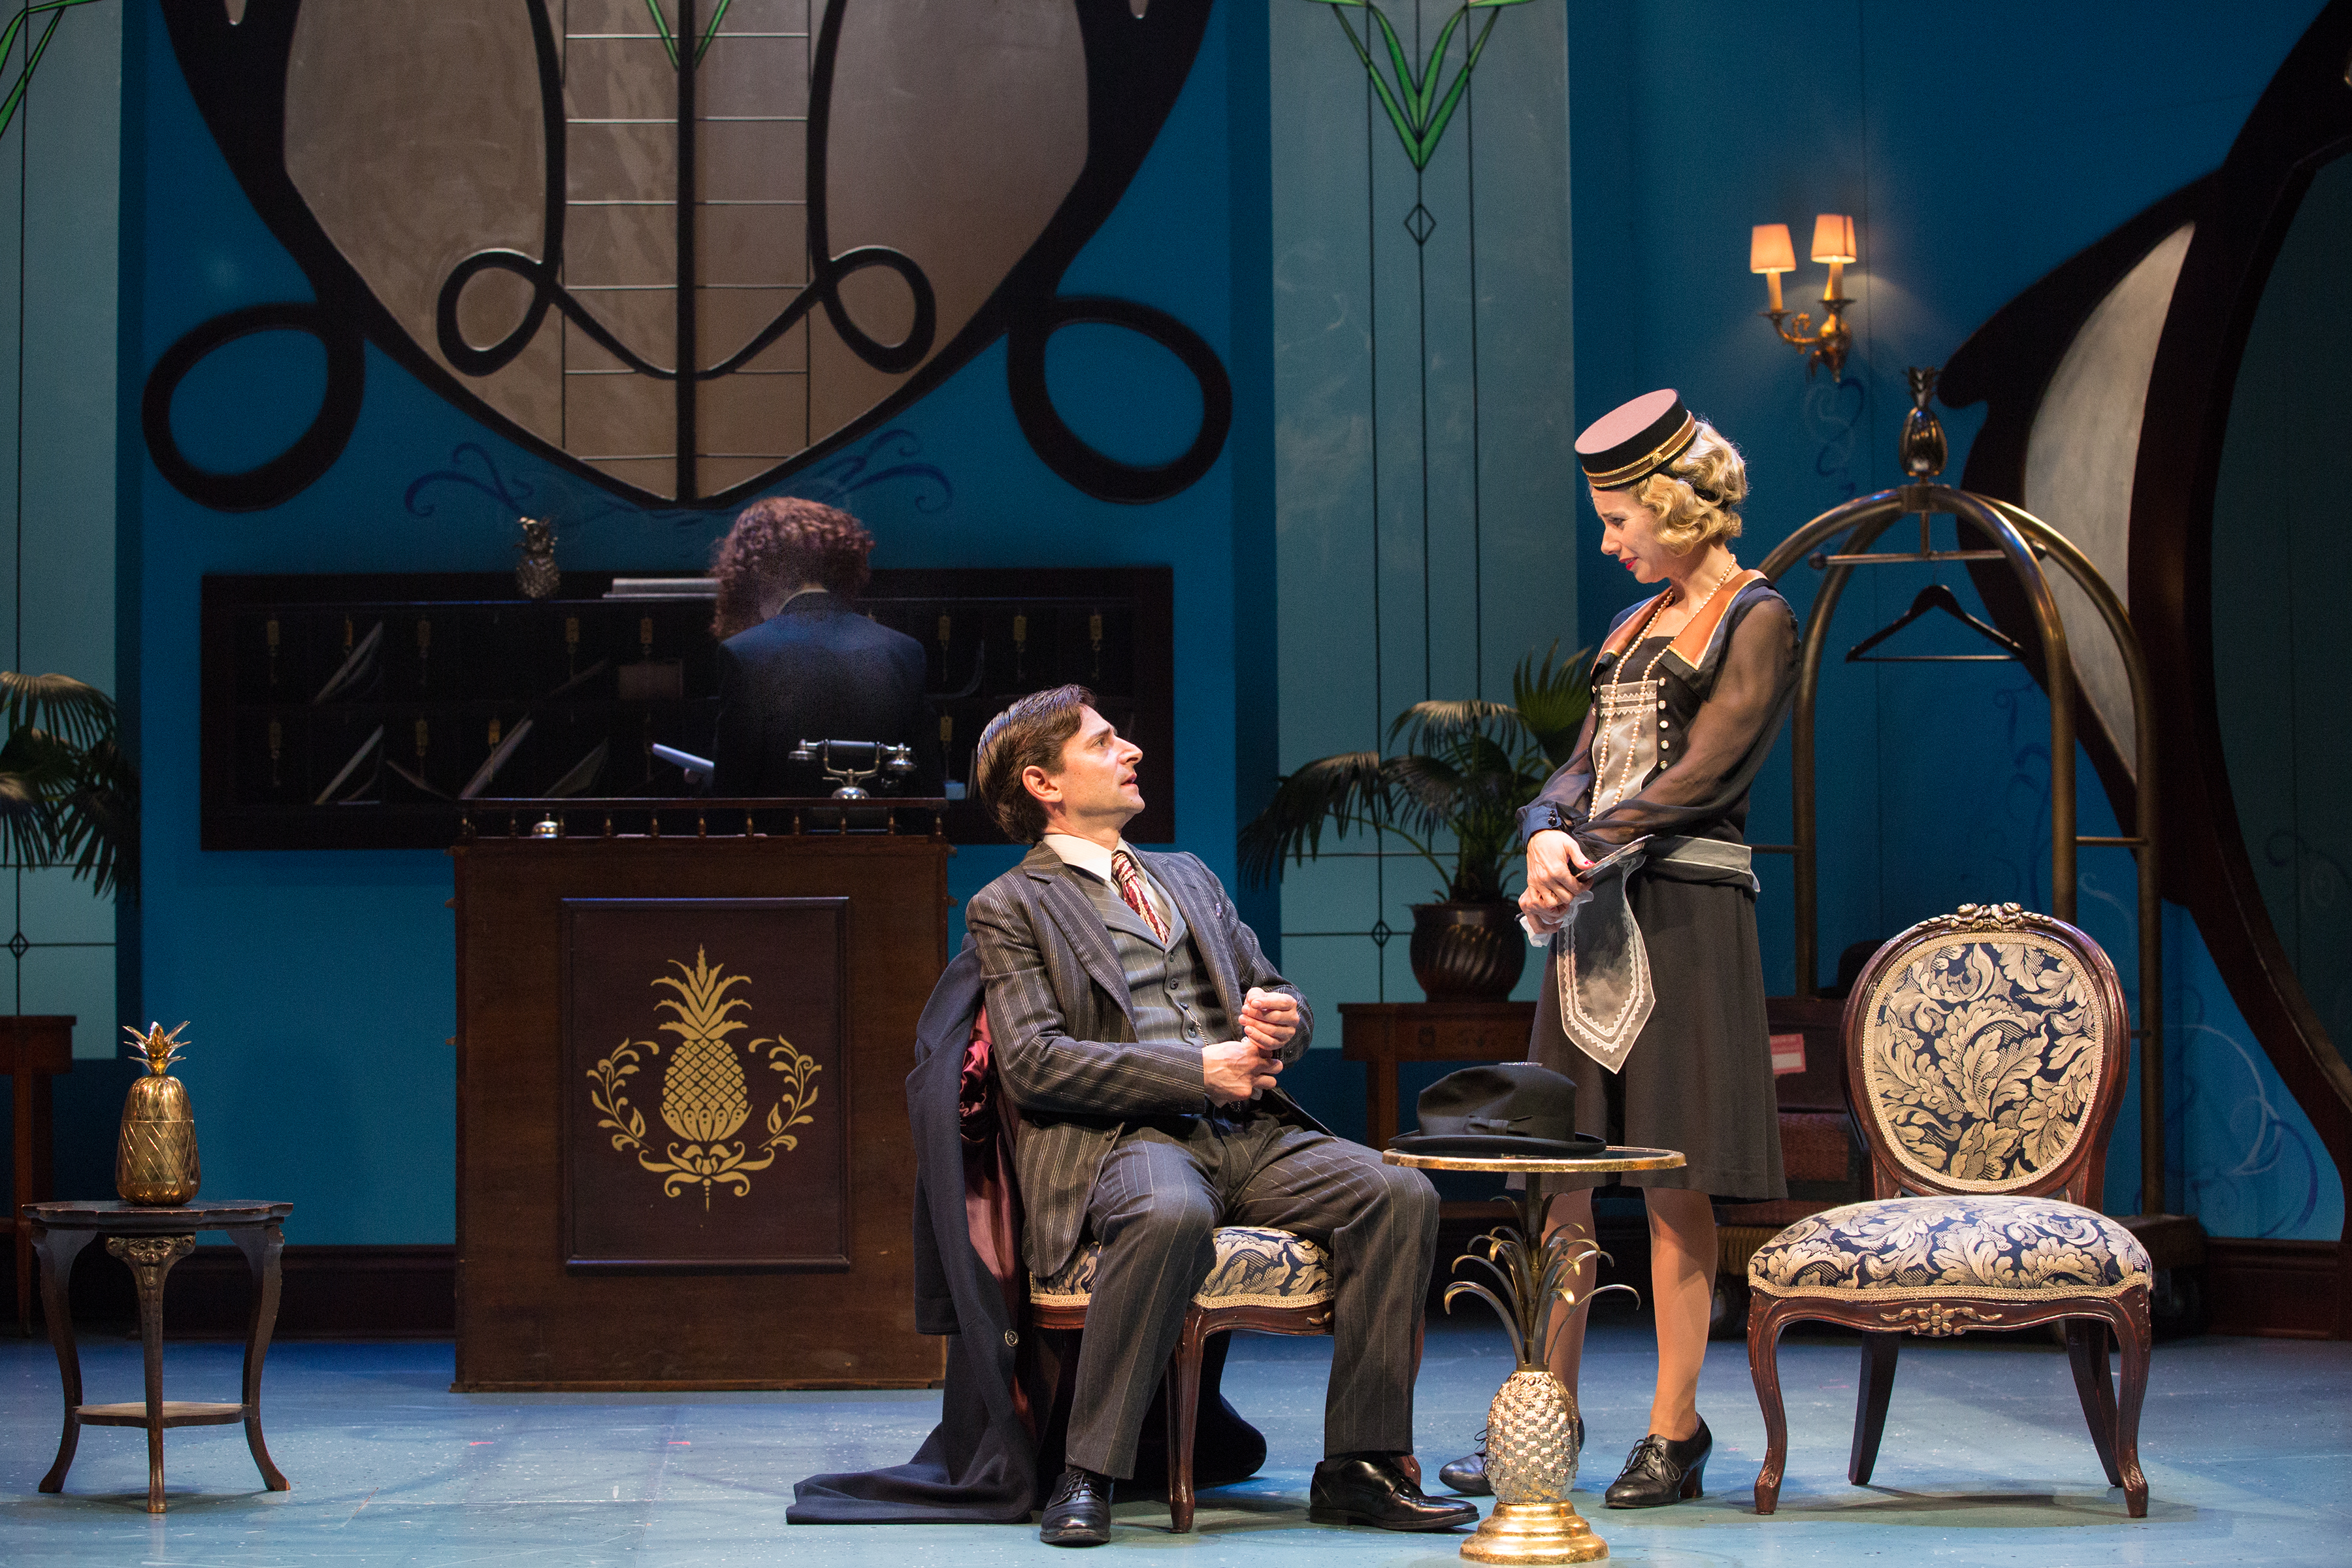 BWW Review: Soulpepper's PICTURE THIS is a Weird, Wacky, Whimsical Farce